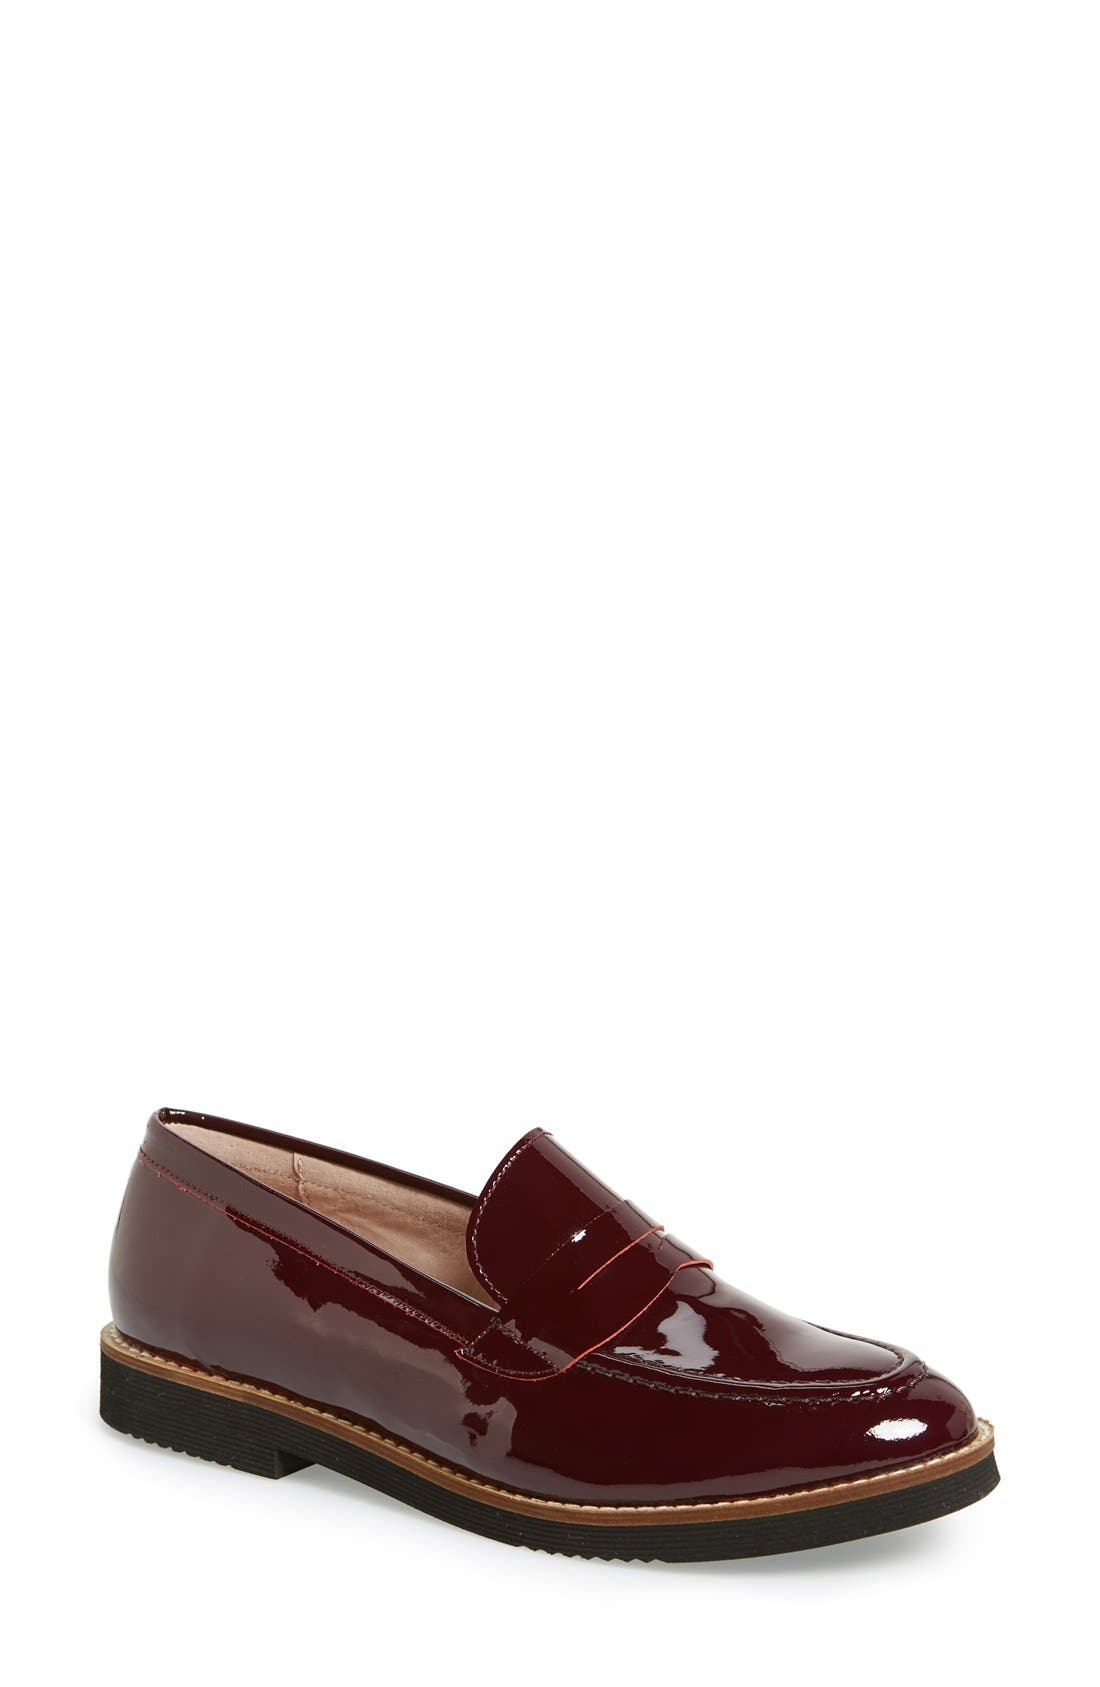 Alternate Image 1 Selected - André Assous 'Jessi' Penny Loafer (Women)